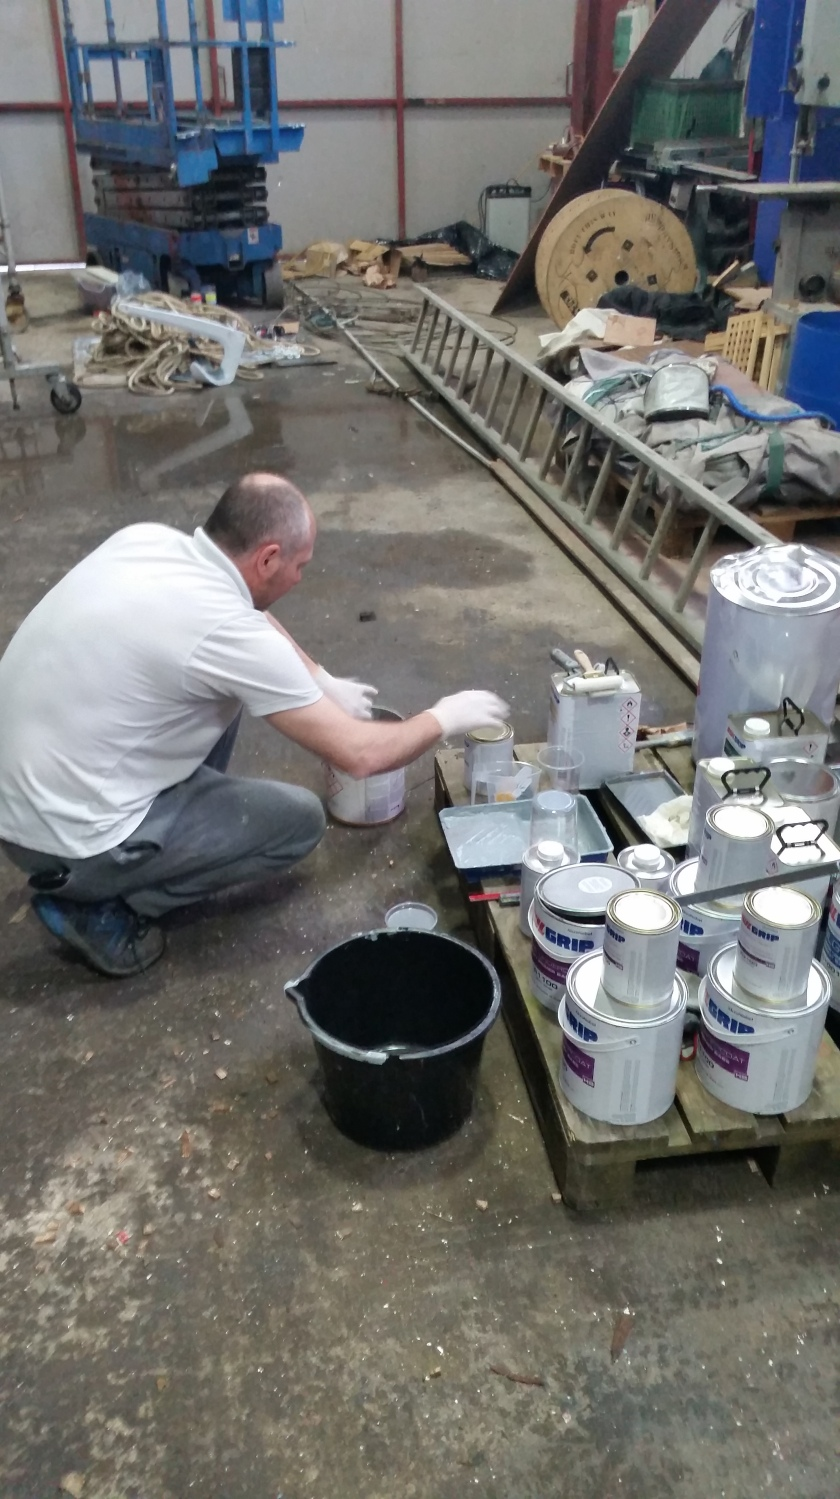 Gary Mooney, the GRP and Painter, was meticulous in mixing and applying the AWLGRIP paints.